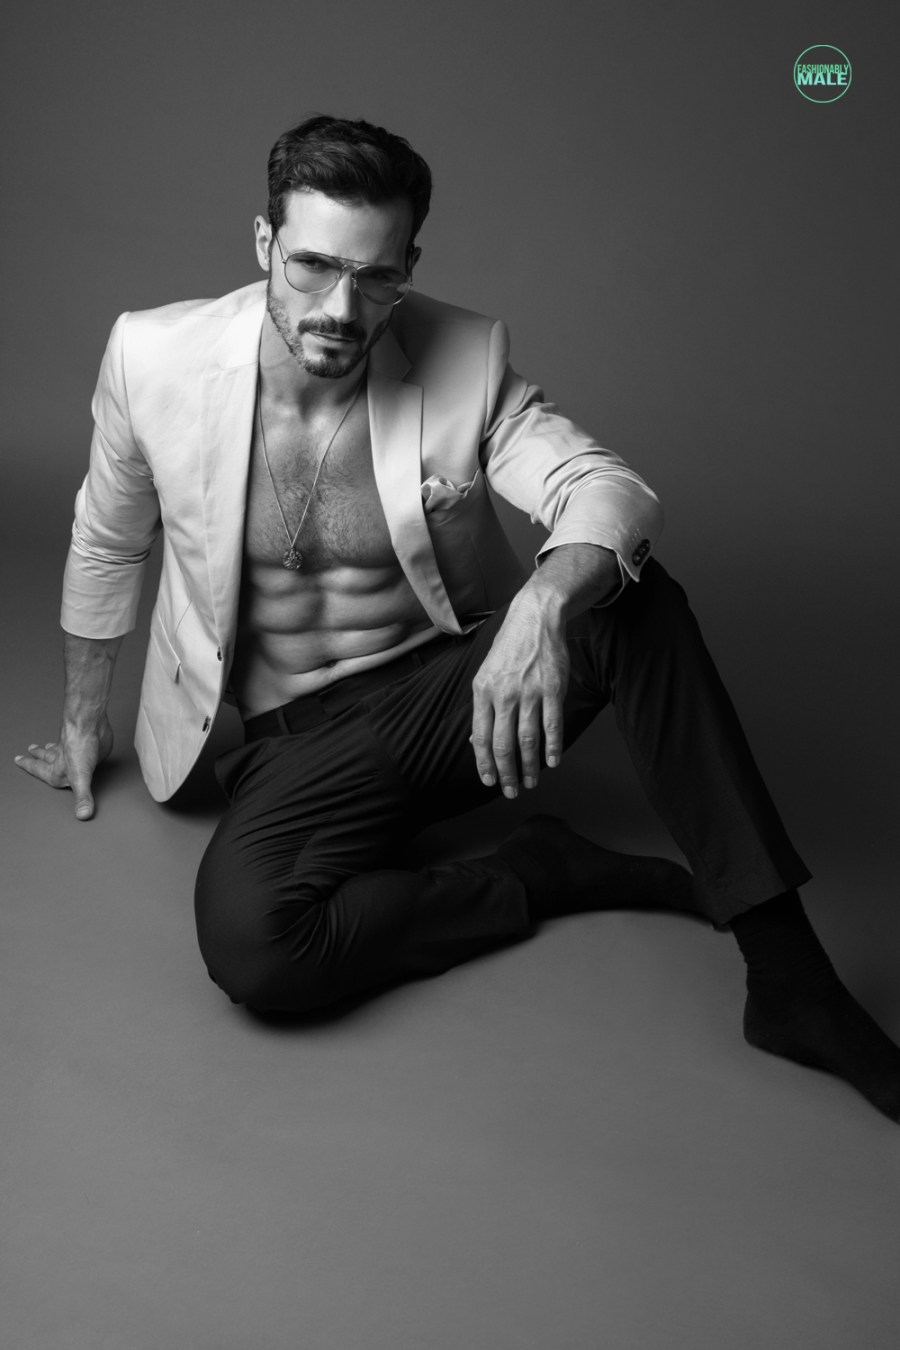 Adam Cowie by Malc Stone Fashionably Male6